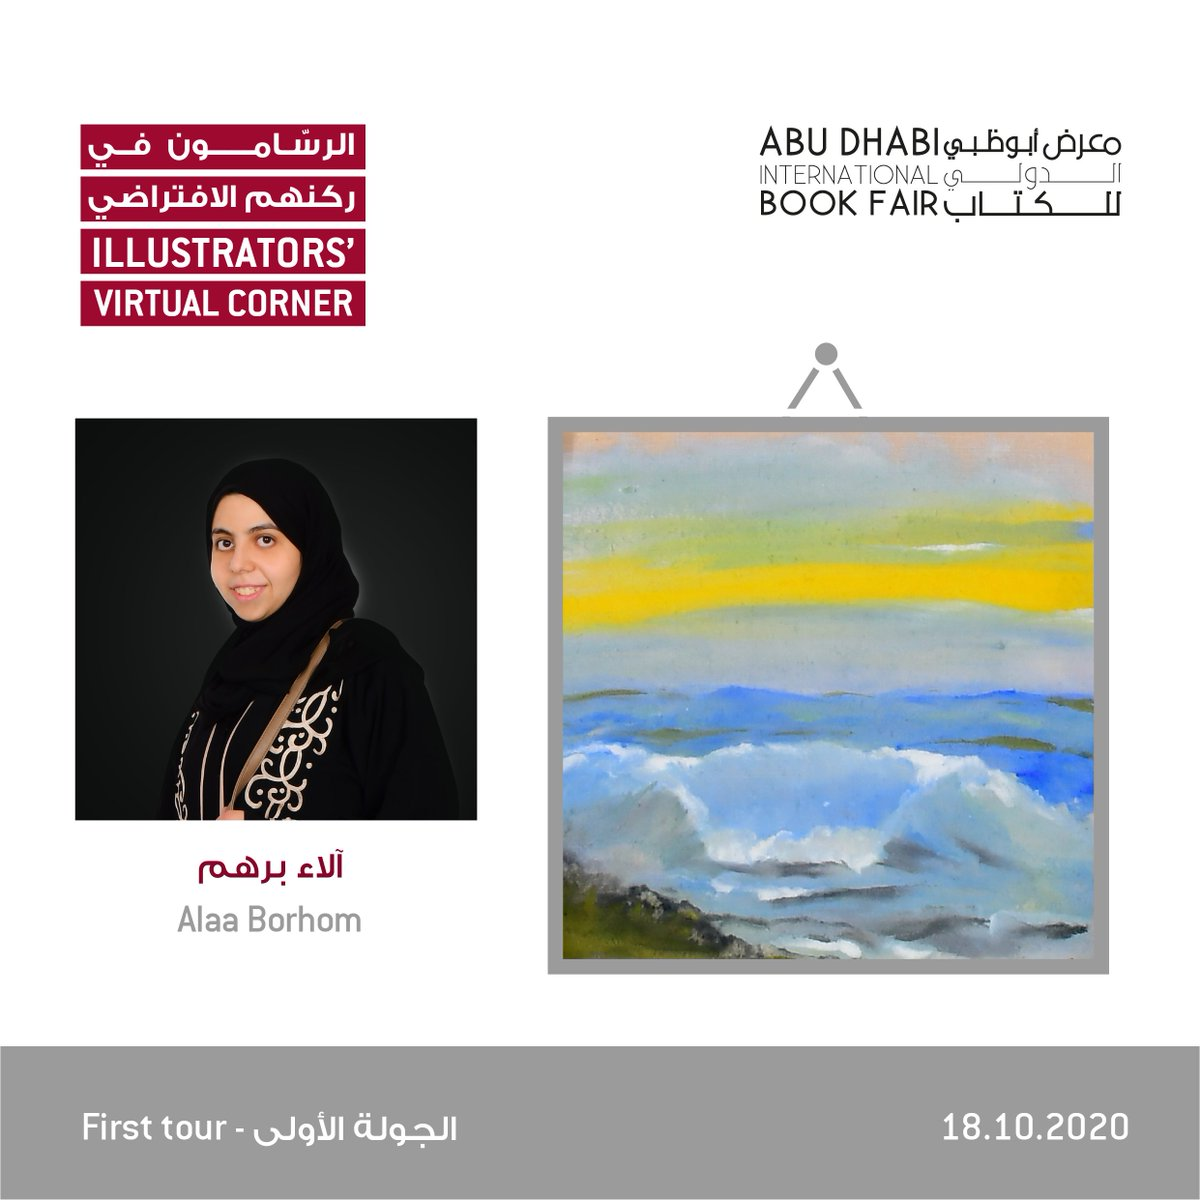 """Join us for weekly virtual sessions starting Sunday, 18 October, Entitled: """"illustrators' Virtual Corner"""". Stay tuned for the First tour of the live broadcast on our YouTube channel  https://t.co/uKapuaUAPe  #ADIBF #Reading #Books #Culture #InAbuDhabi https://t.co/BaGRT1AGSn"""